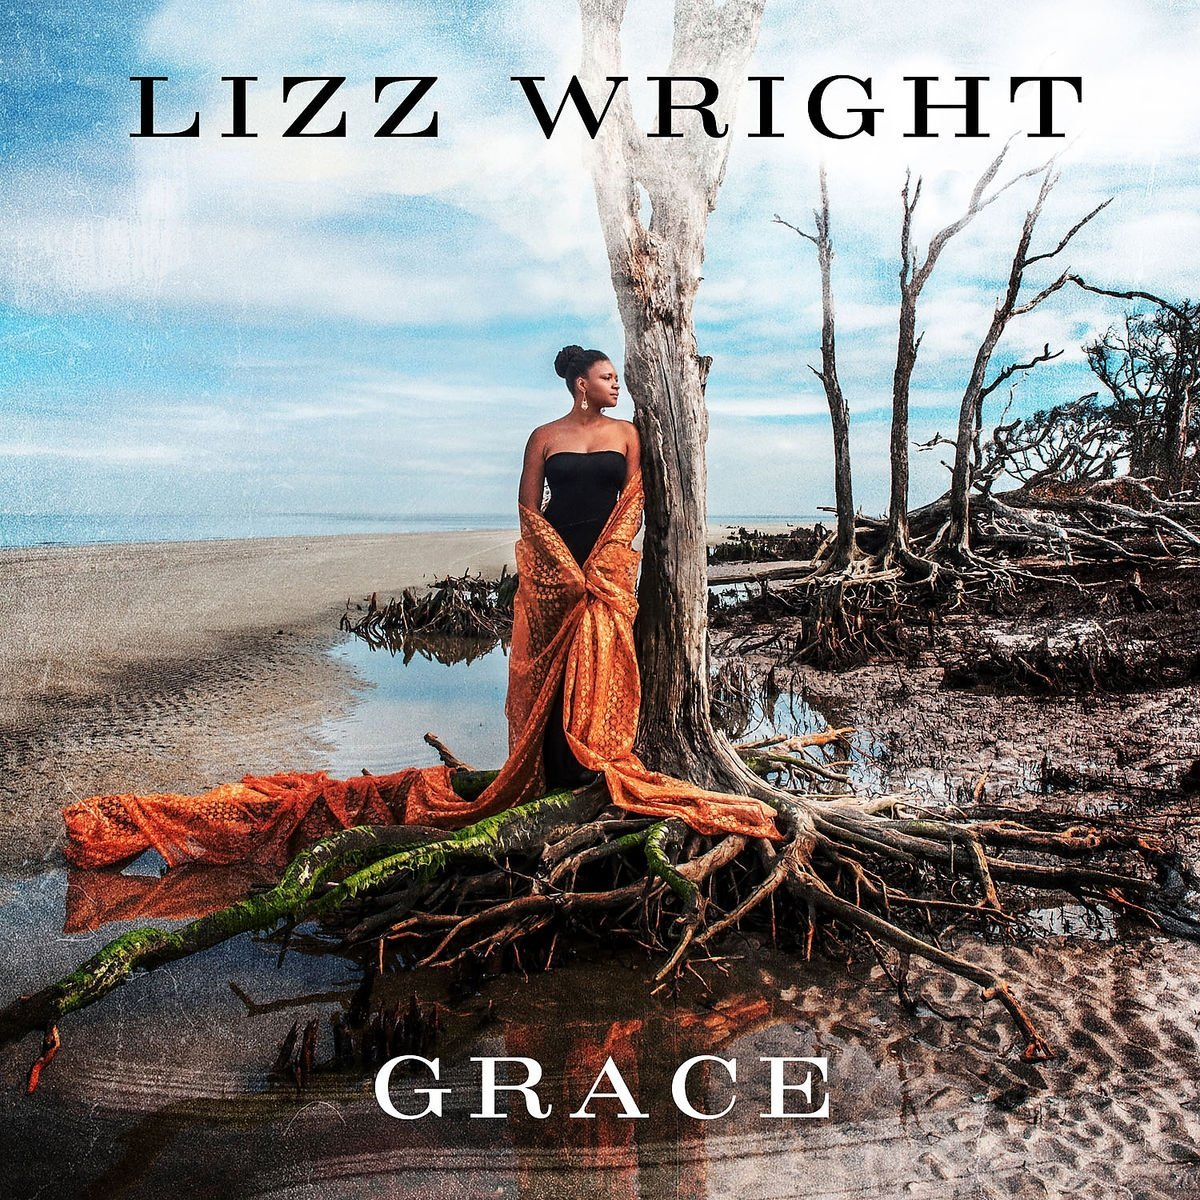 LIZZ WRIGHT - Grace cover